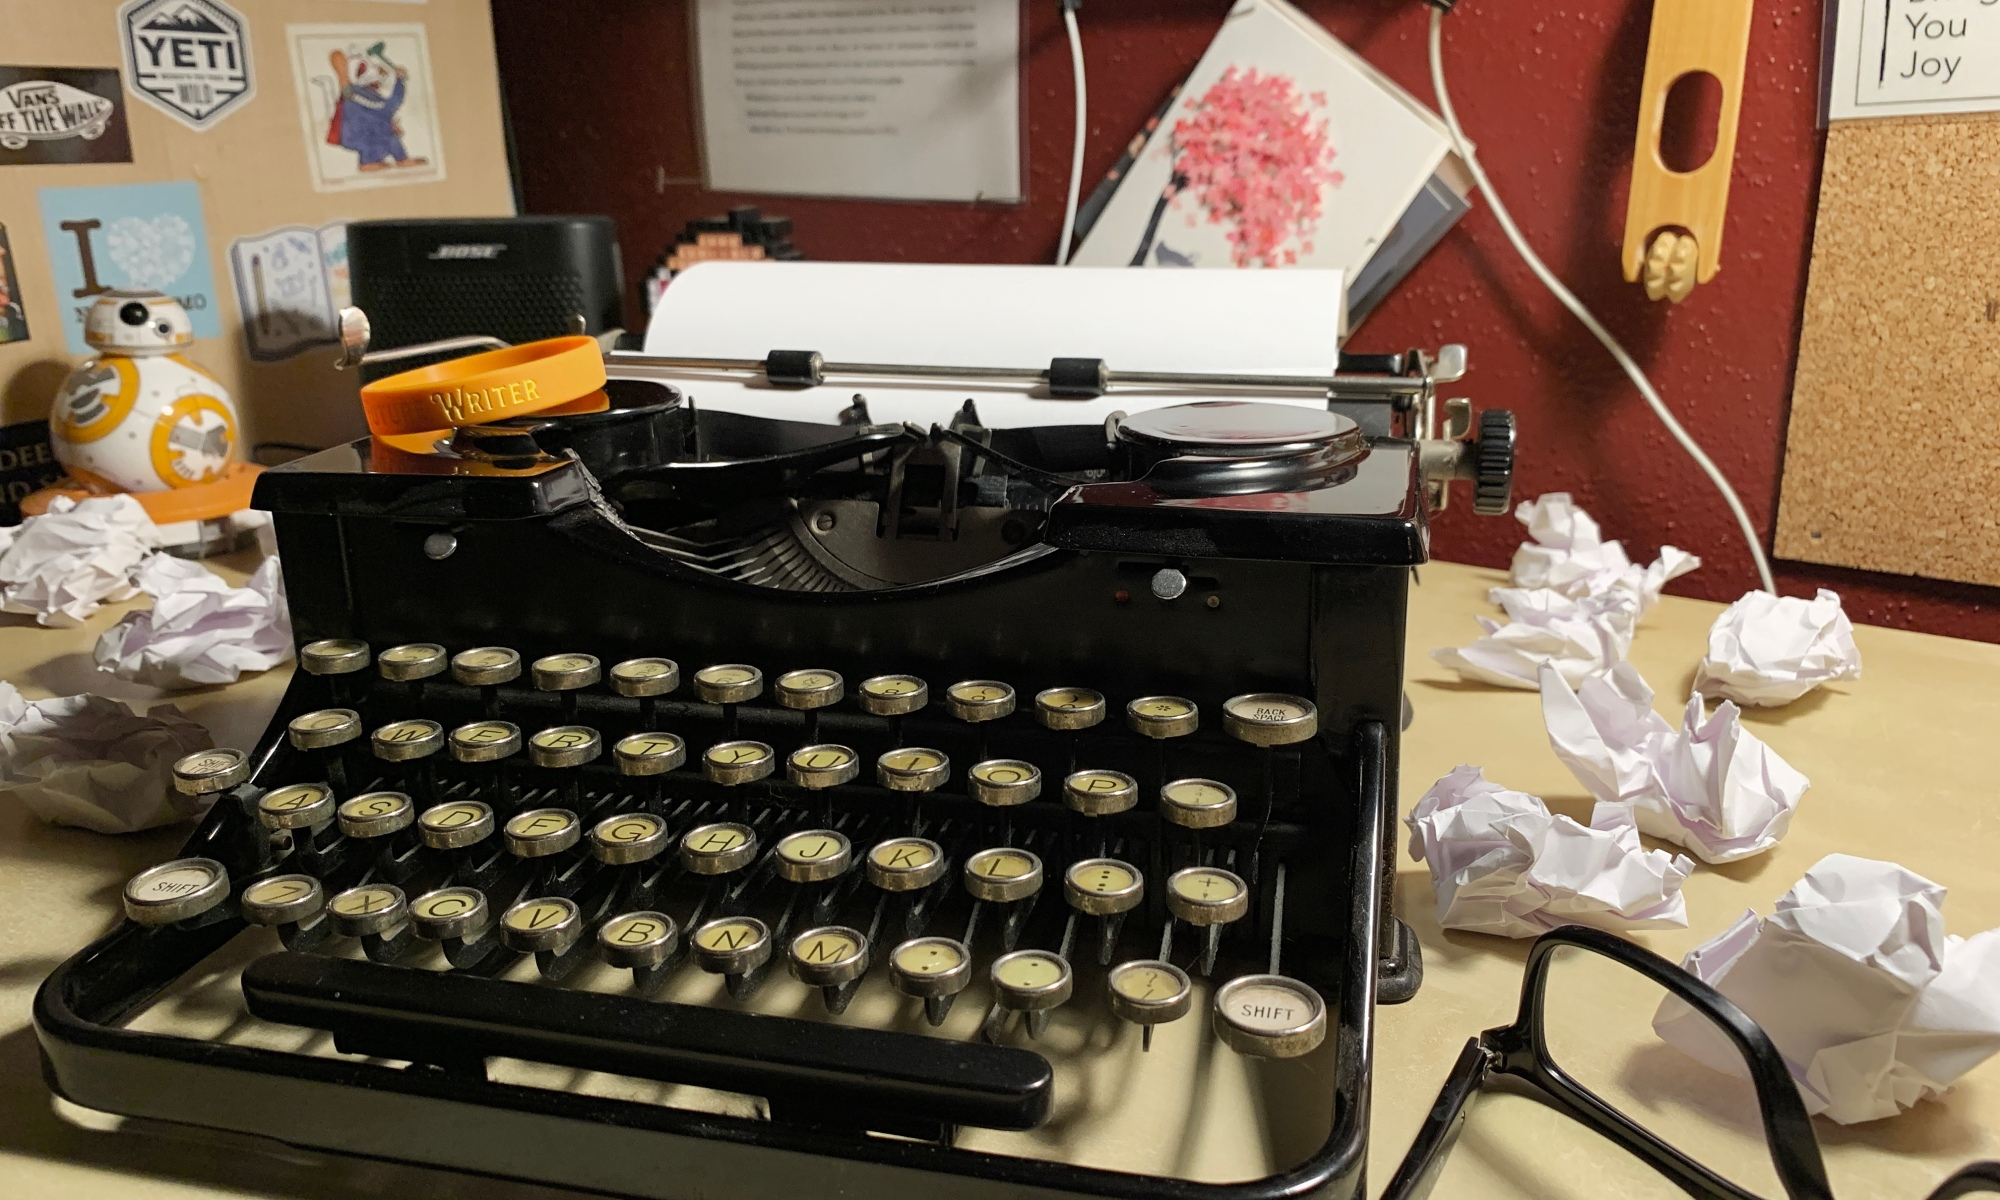 1934 Royal typewriter with glasses resting next to it surrounded by crumpled up paper.